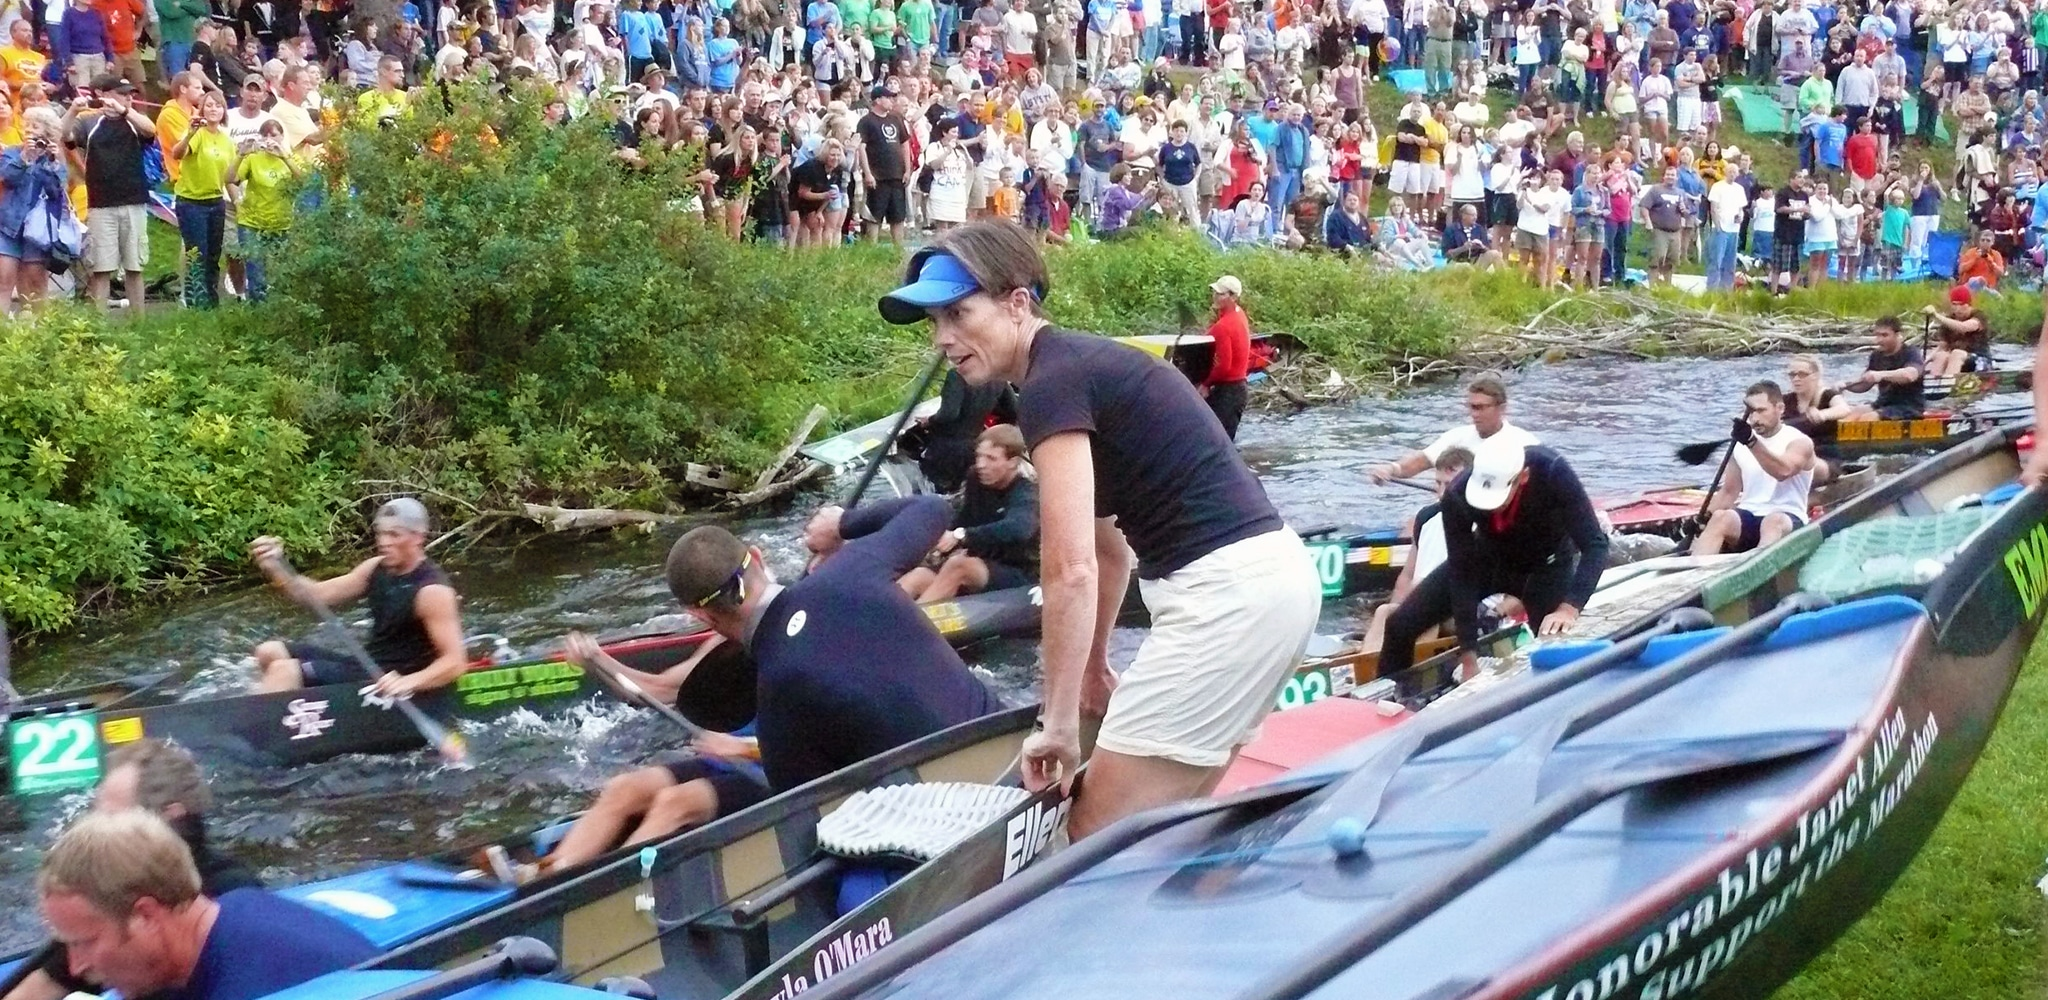 AuSable River Festival July 26 - July 31